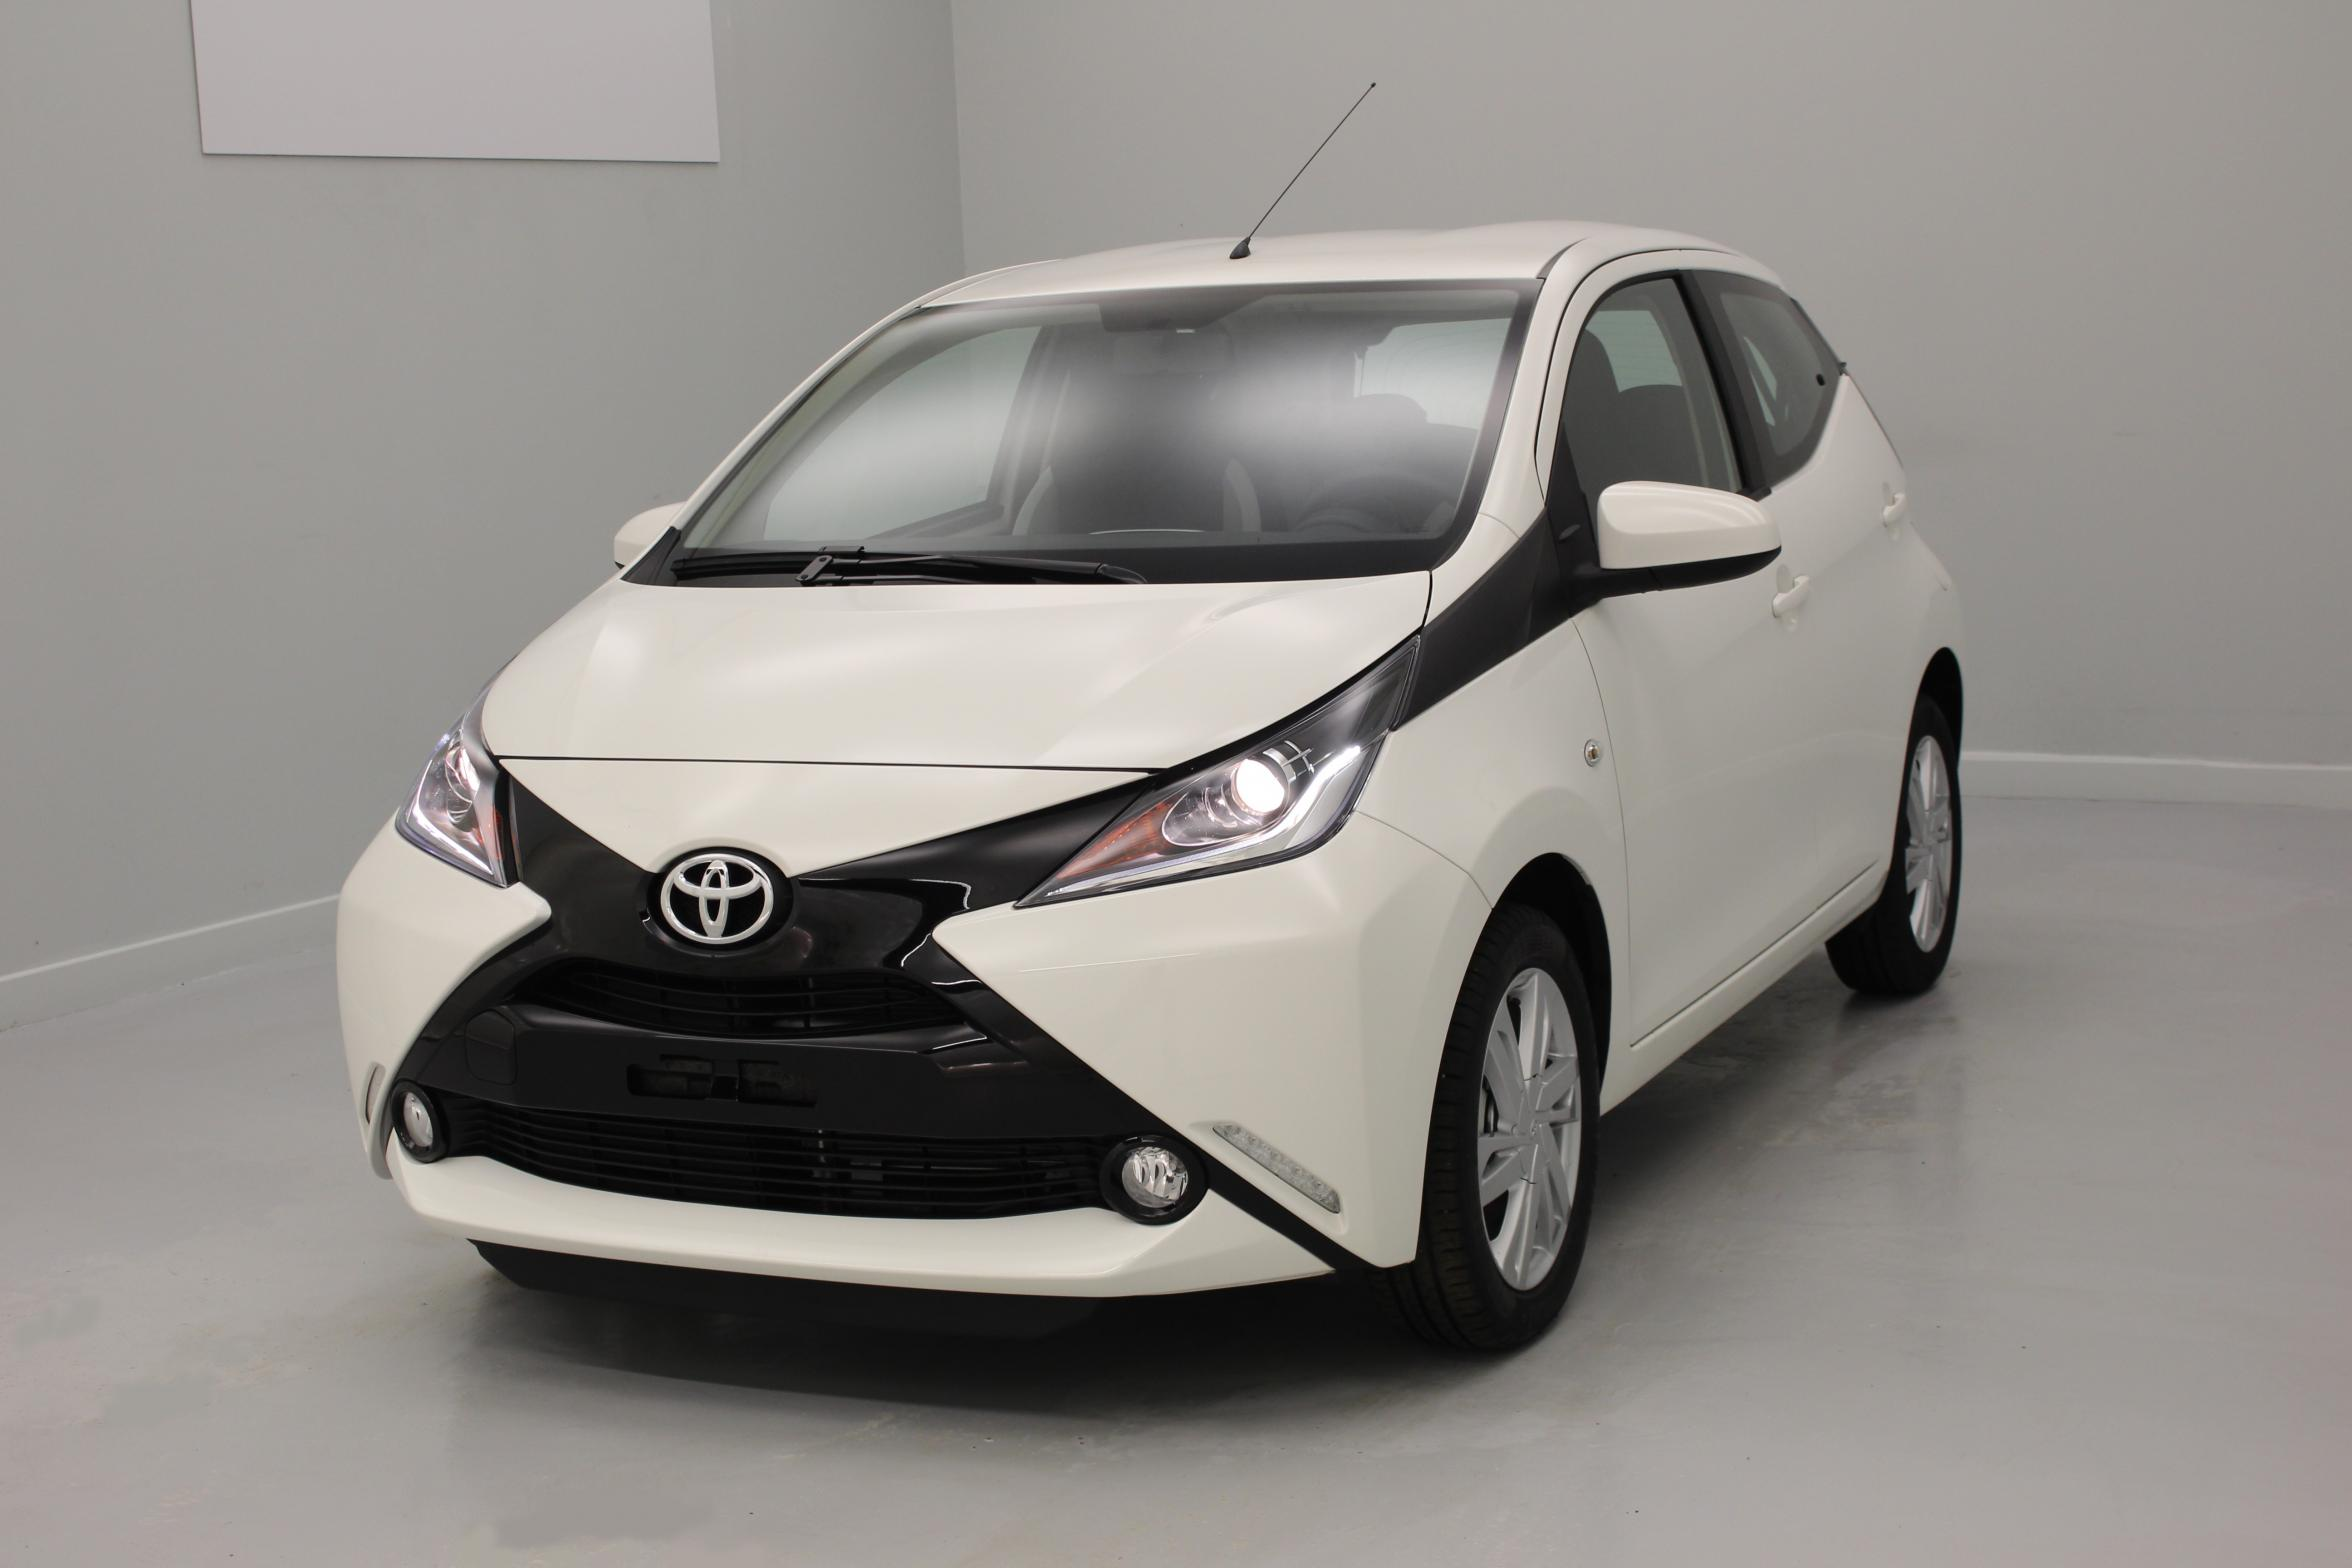 toyota aygo 1 0 vvt i x play blanc pur x touch x light jantes alliage 15 39 avec options. Black Bedroom Furniture Sets. Home Design Ideas